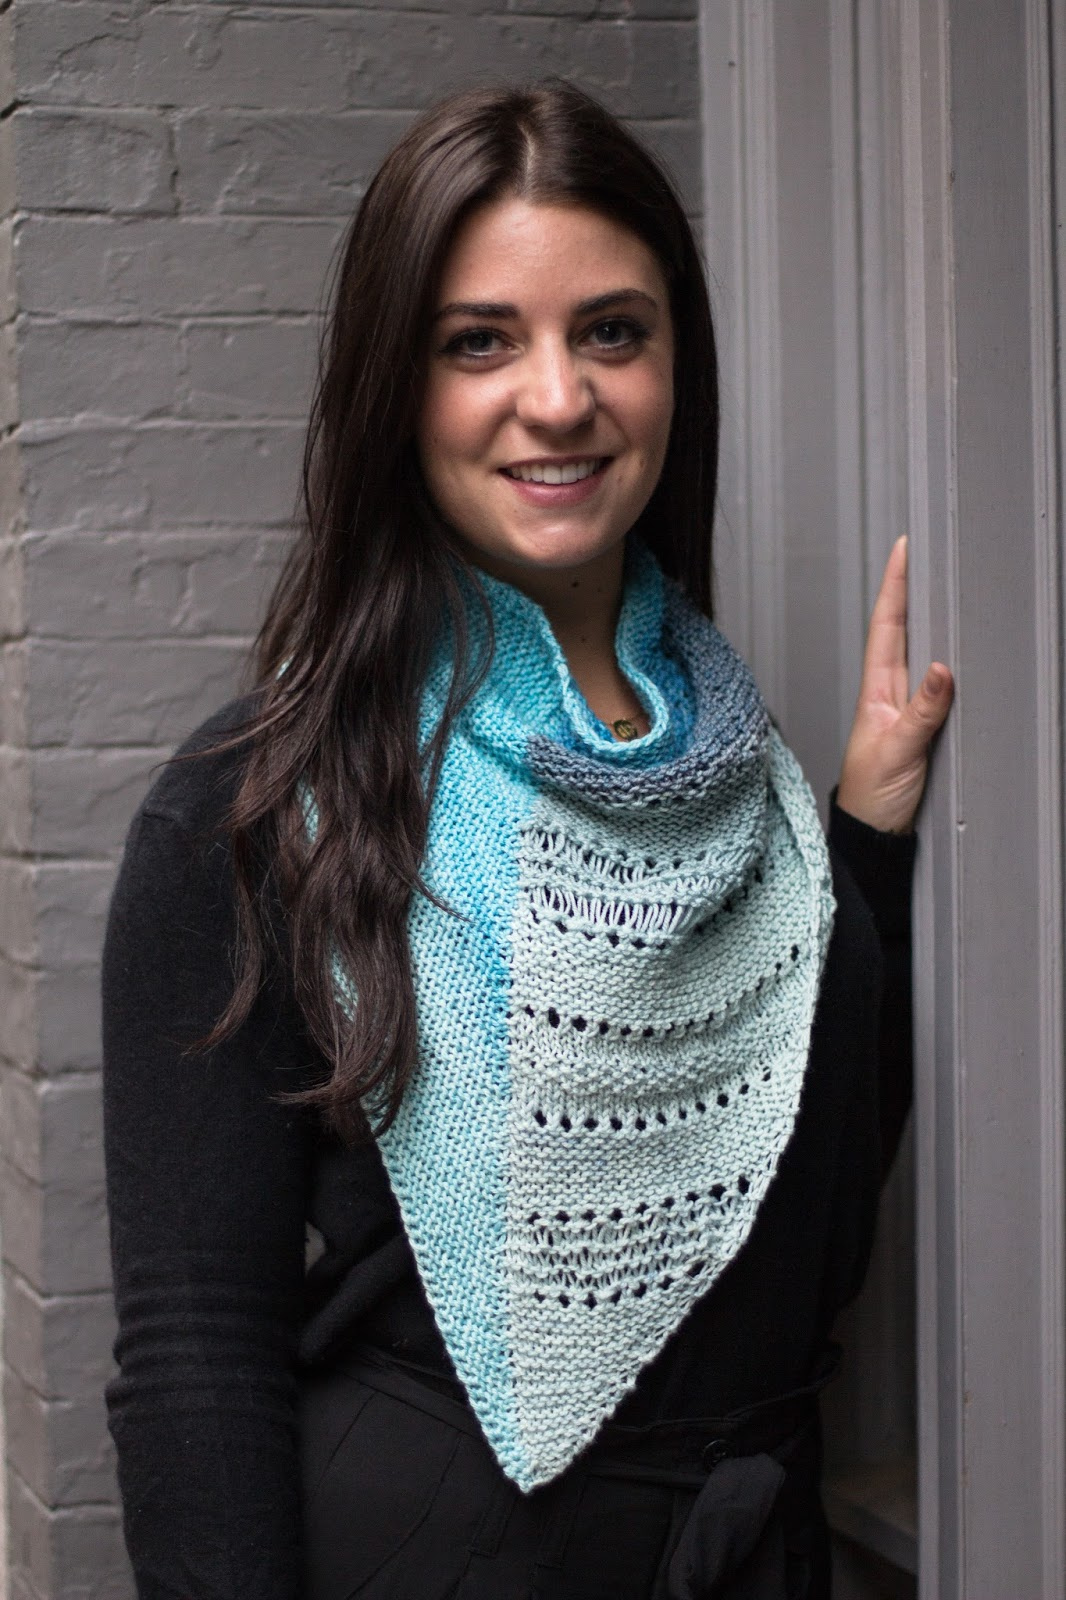 df82d72dfca5 Thank you to BostonJen for donating a copy of her new shawl pattern